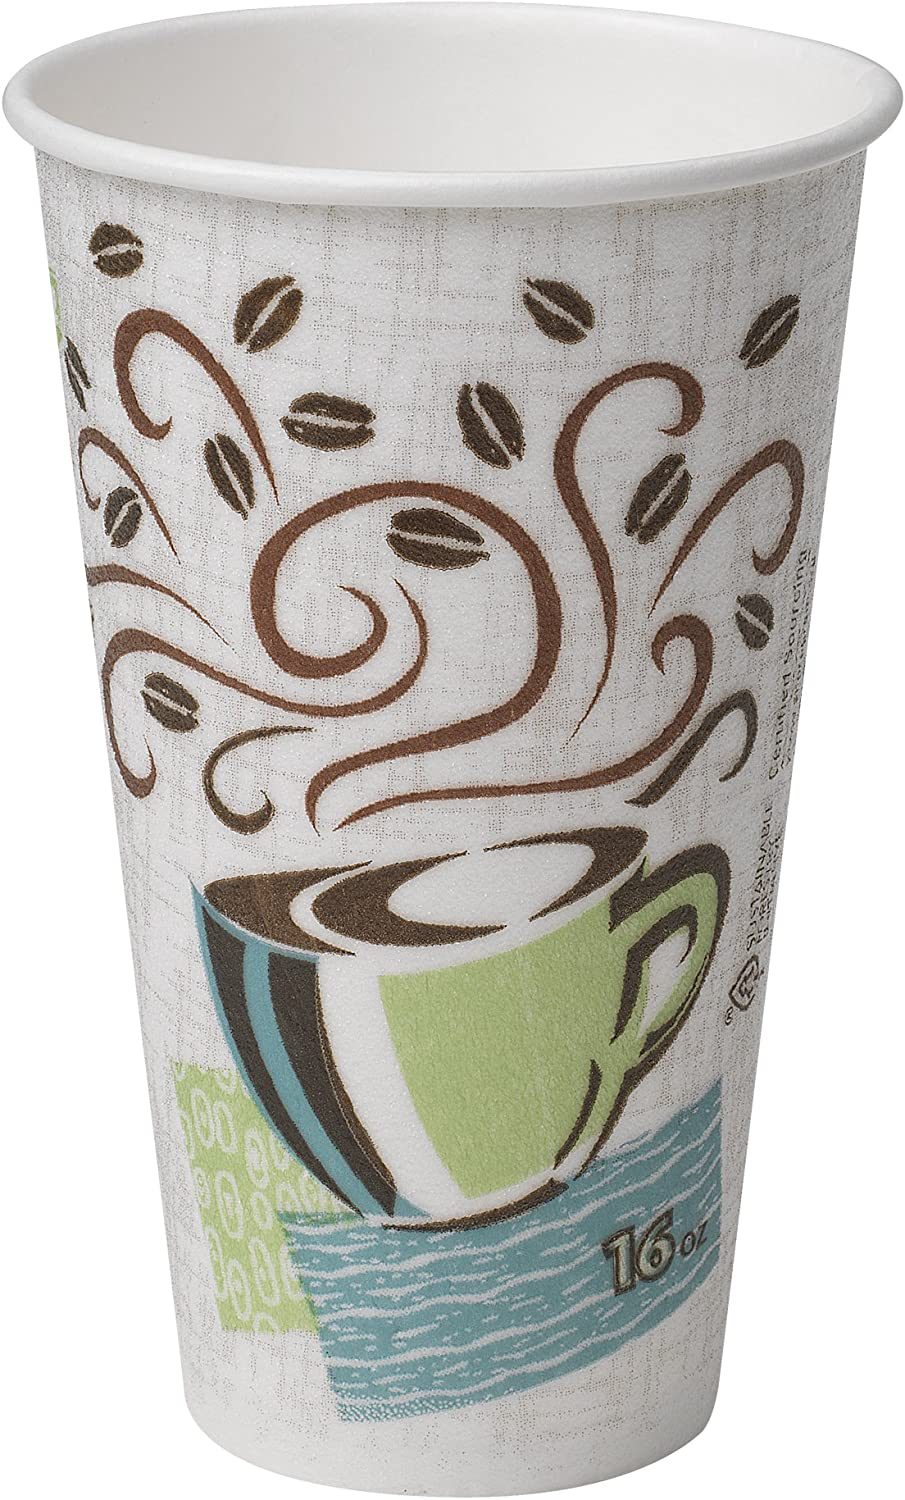 2021 model Free shipping anywhere in the nation Georgia-Pacific PerfecTouch 5356DX WiseSize Coffee Design Insula